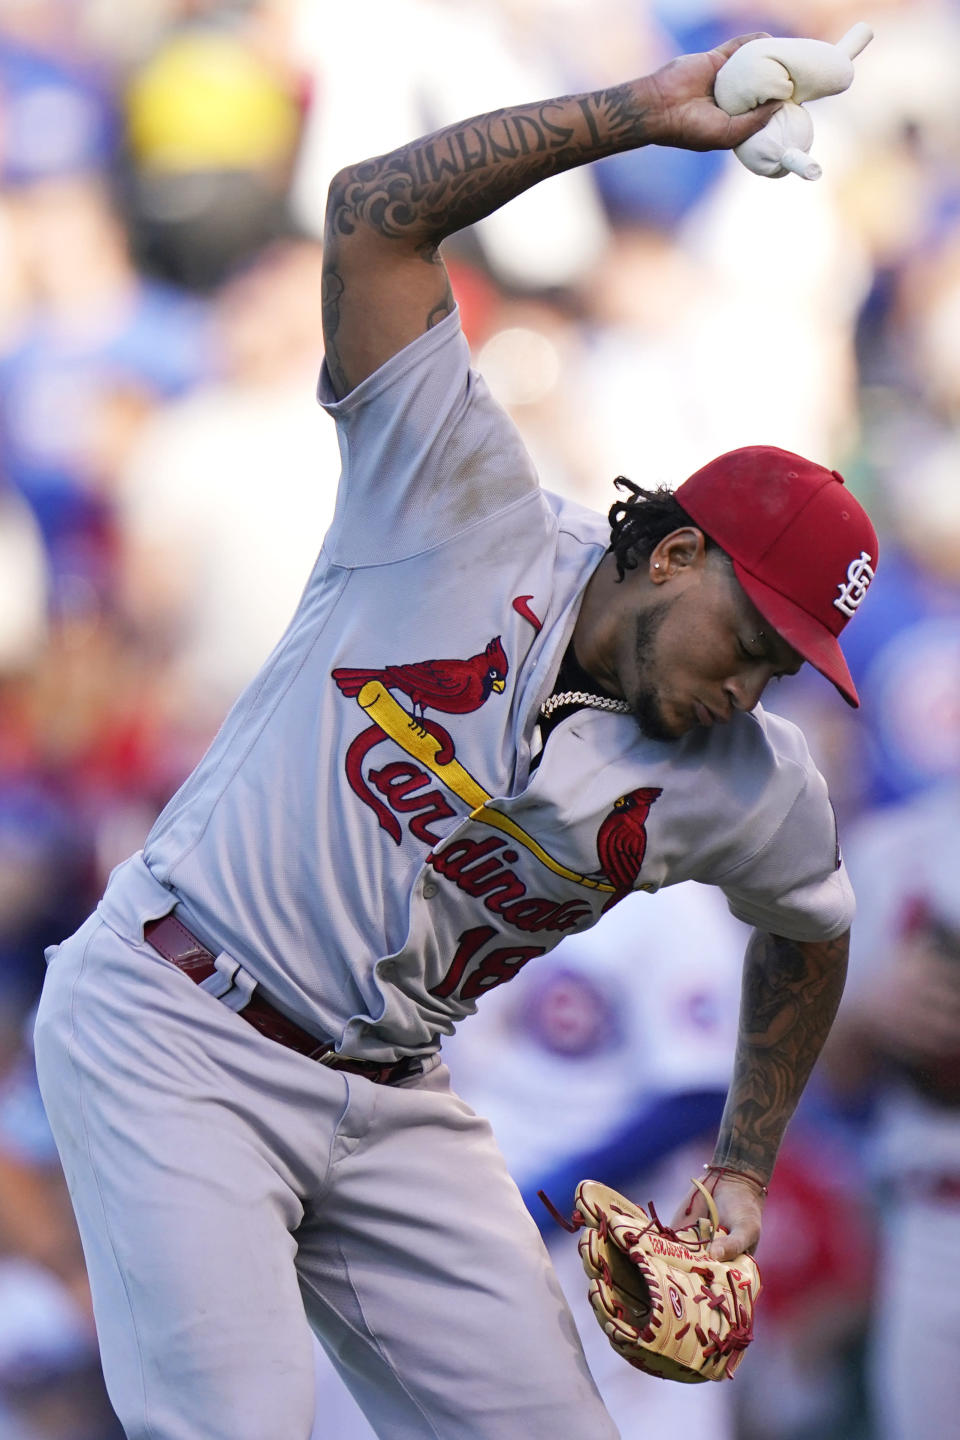 St. Louis Cardinals starting pitcher Carlos Martinez throws the rosin bag on the mound during the third inning of a baseball game against the Chicago Cubs in Chicago, Sunday, June 13, 2021. (AP Photo/Nam Y. Huh)